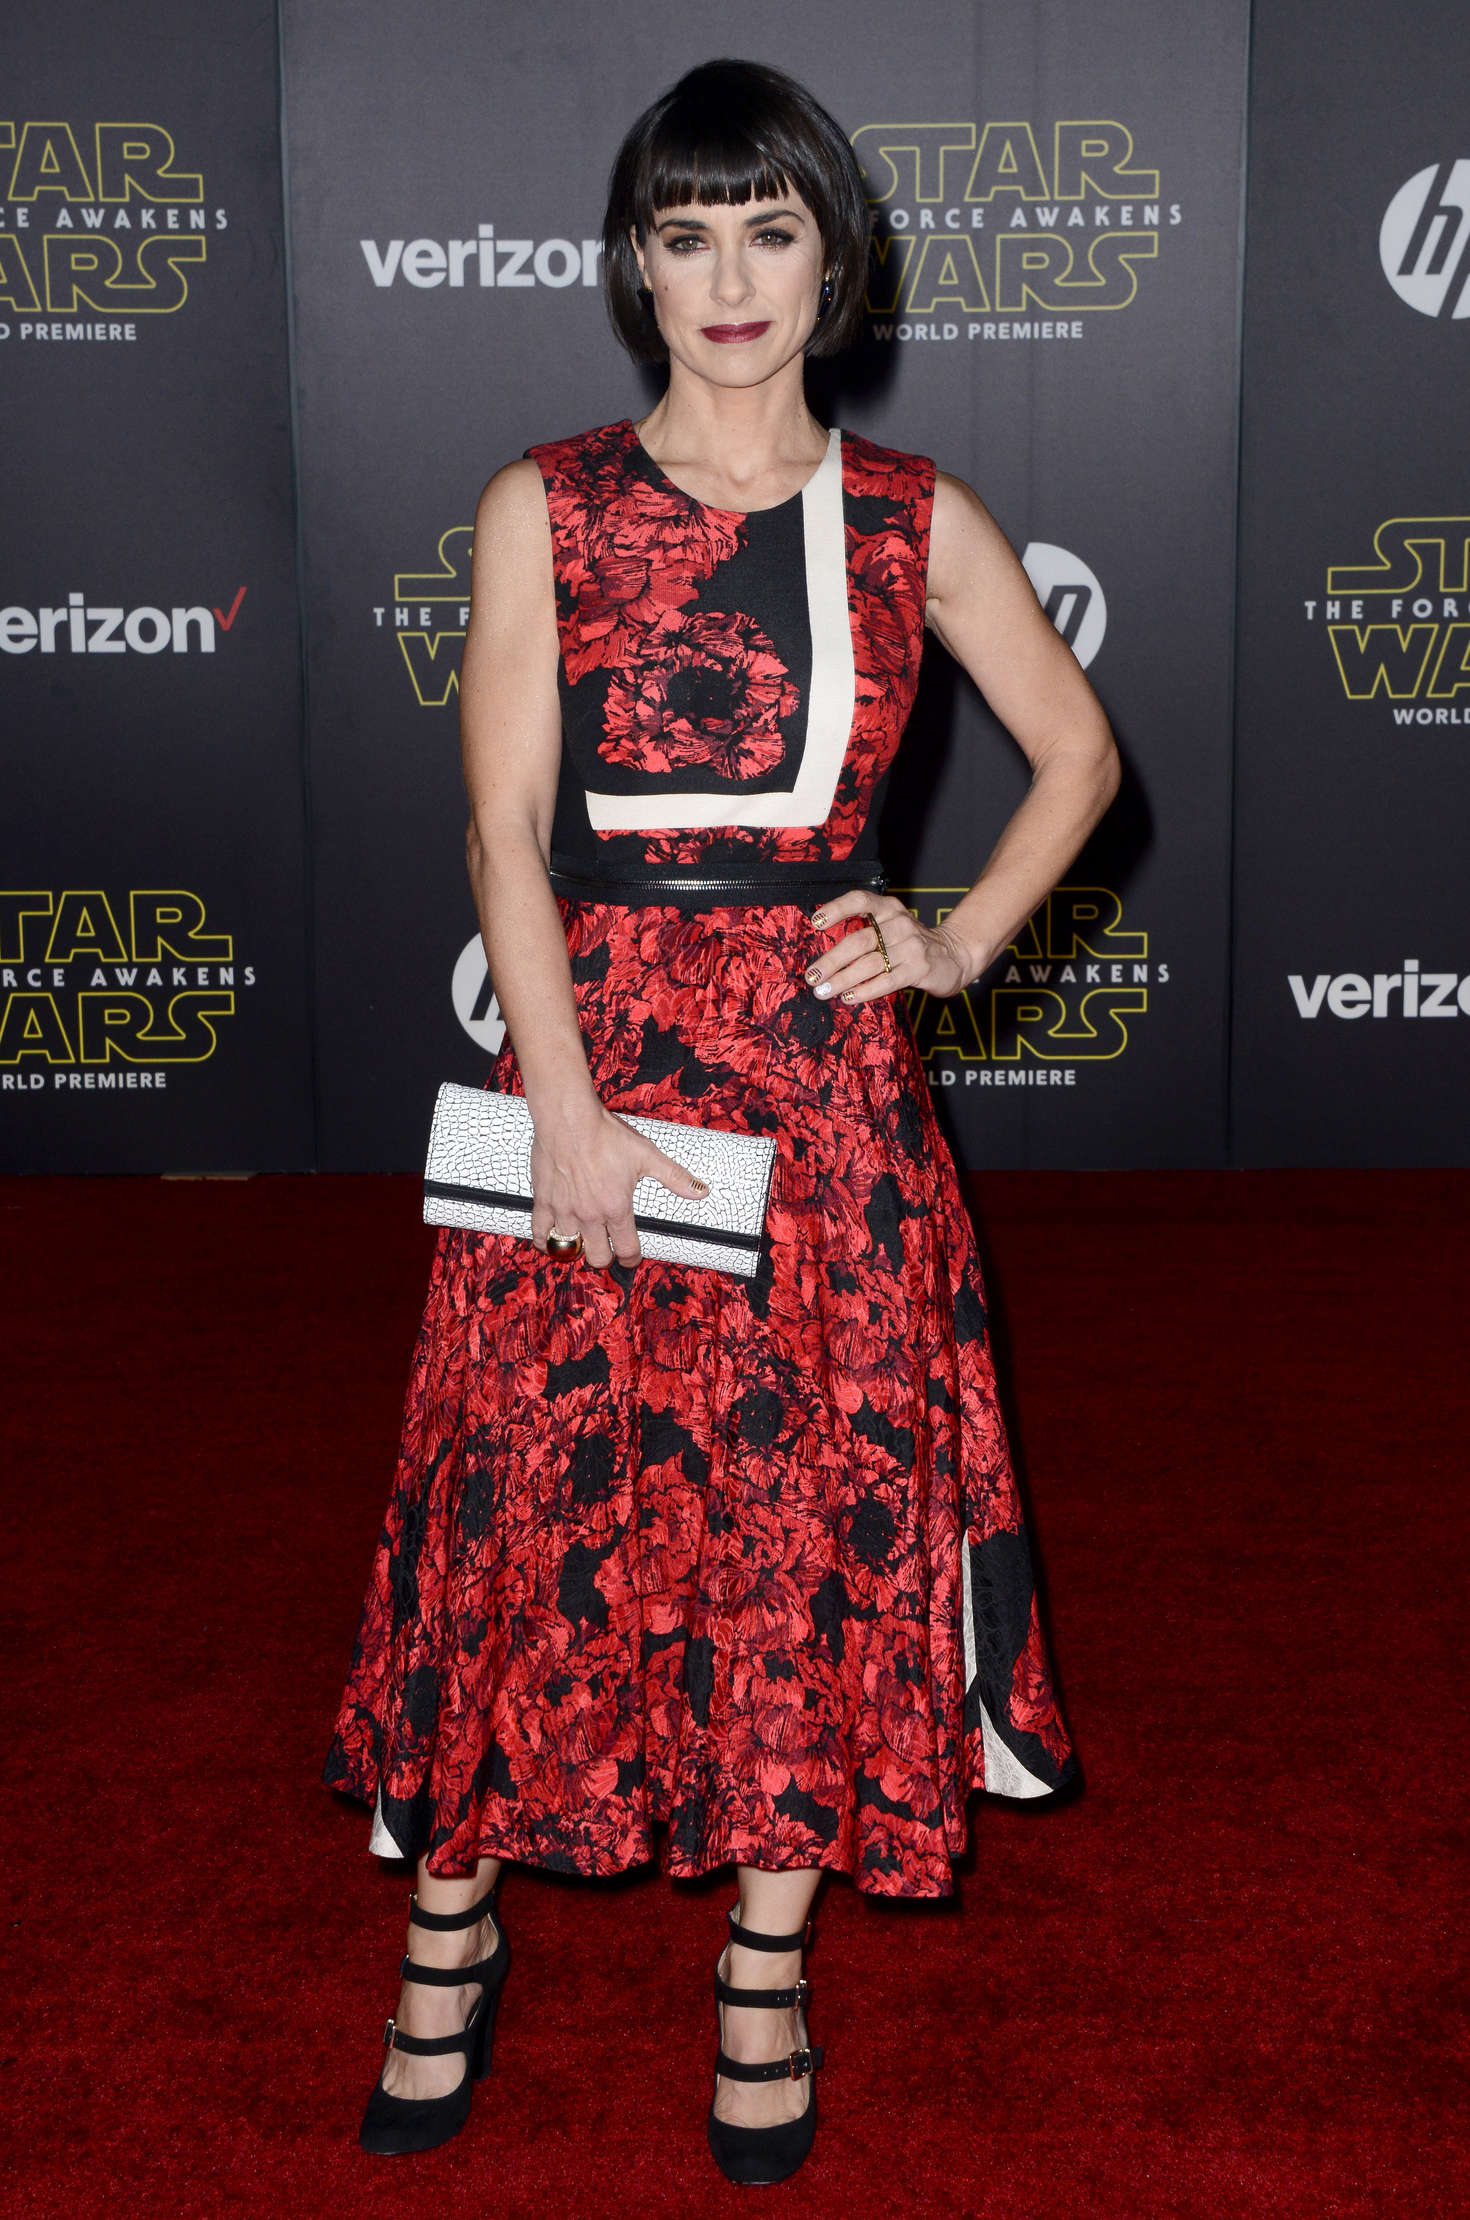 Constance Zimmer Star Wars The Force Awakens Premiere in Hollywood